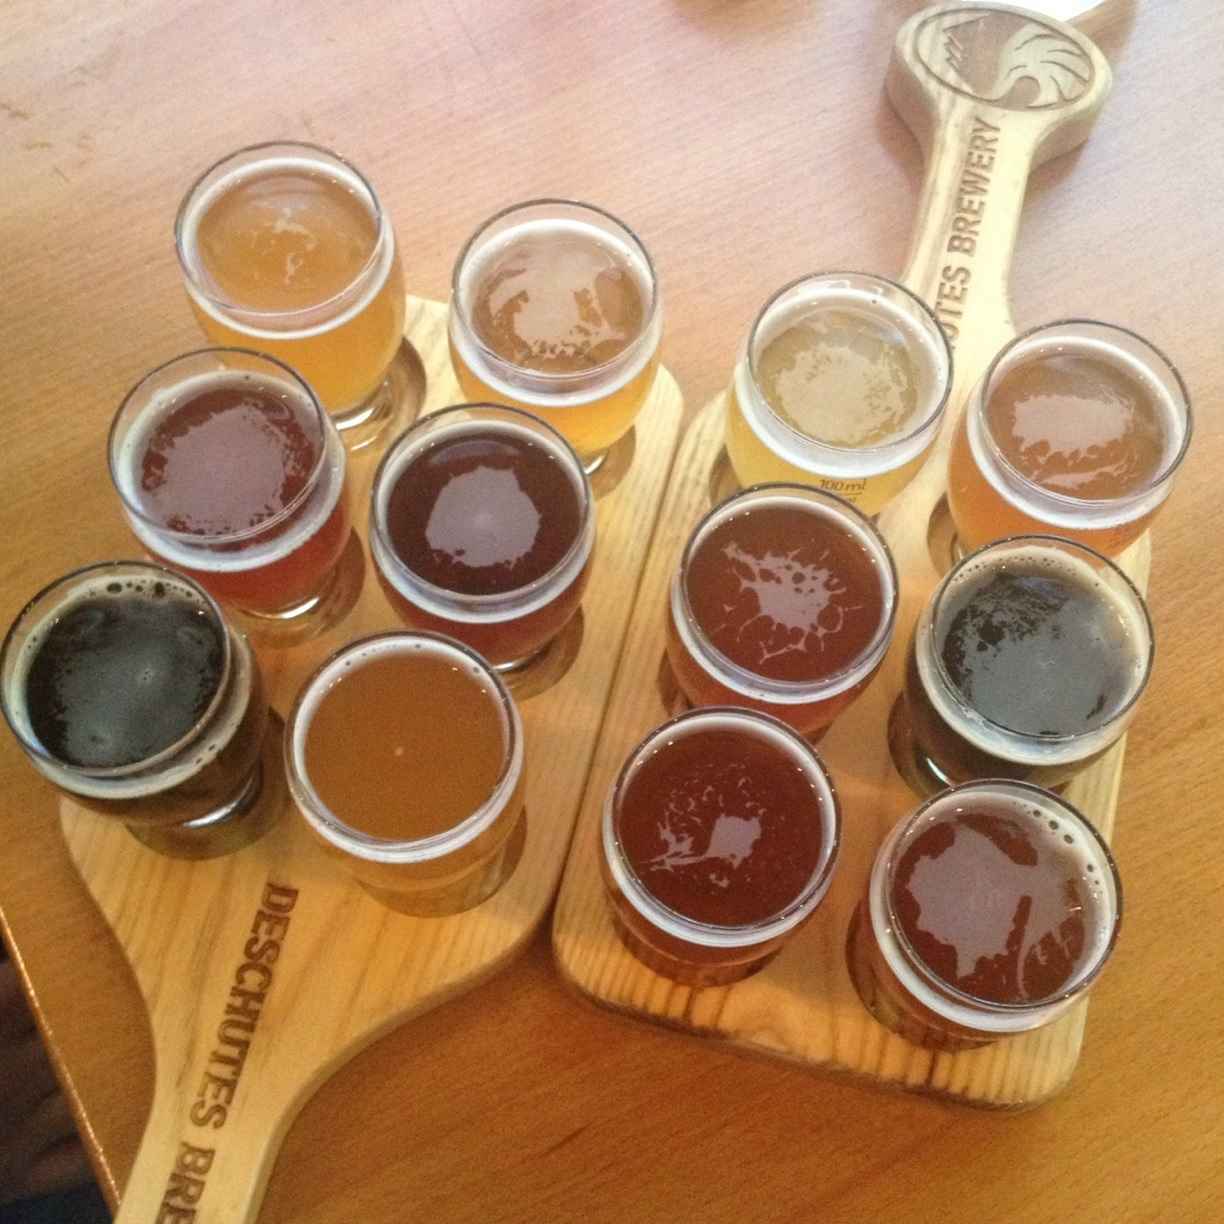 When in Portland (affectionately known as Beervana by many locals), take the opportunity to taste many of the local brews